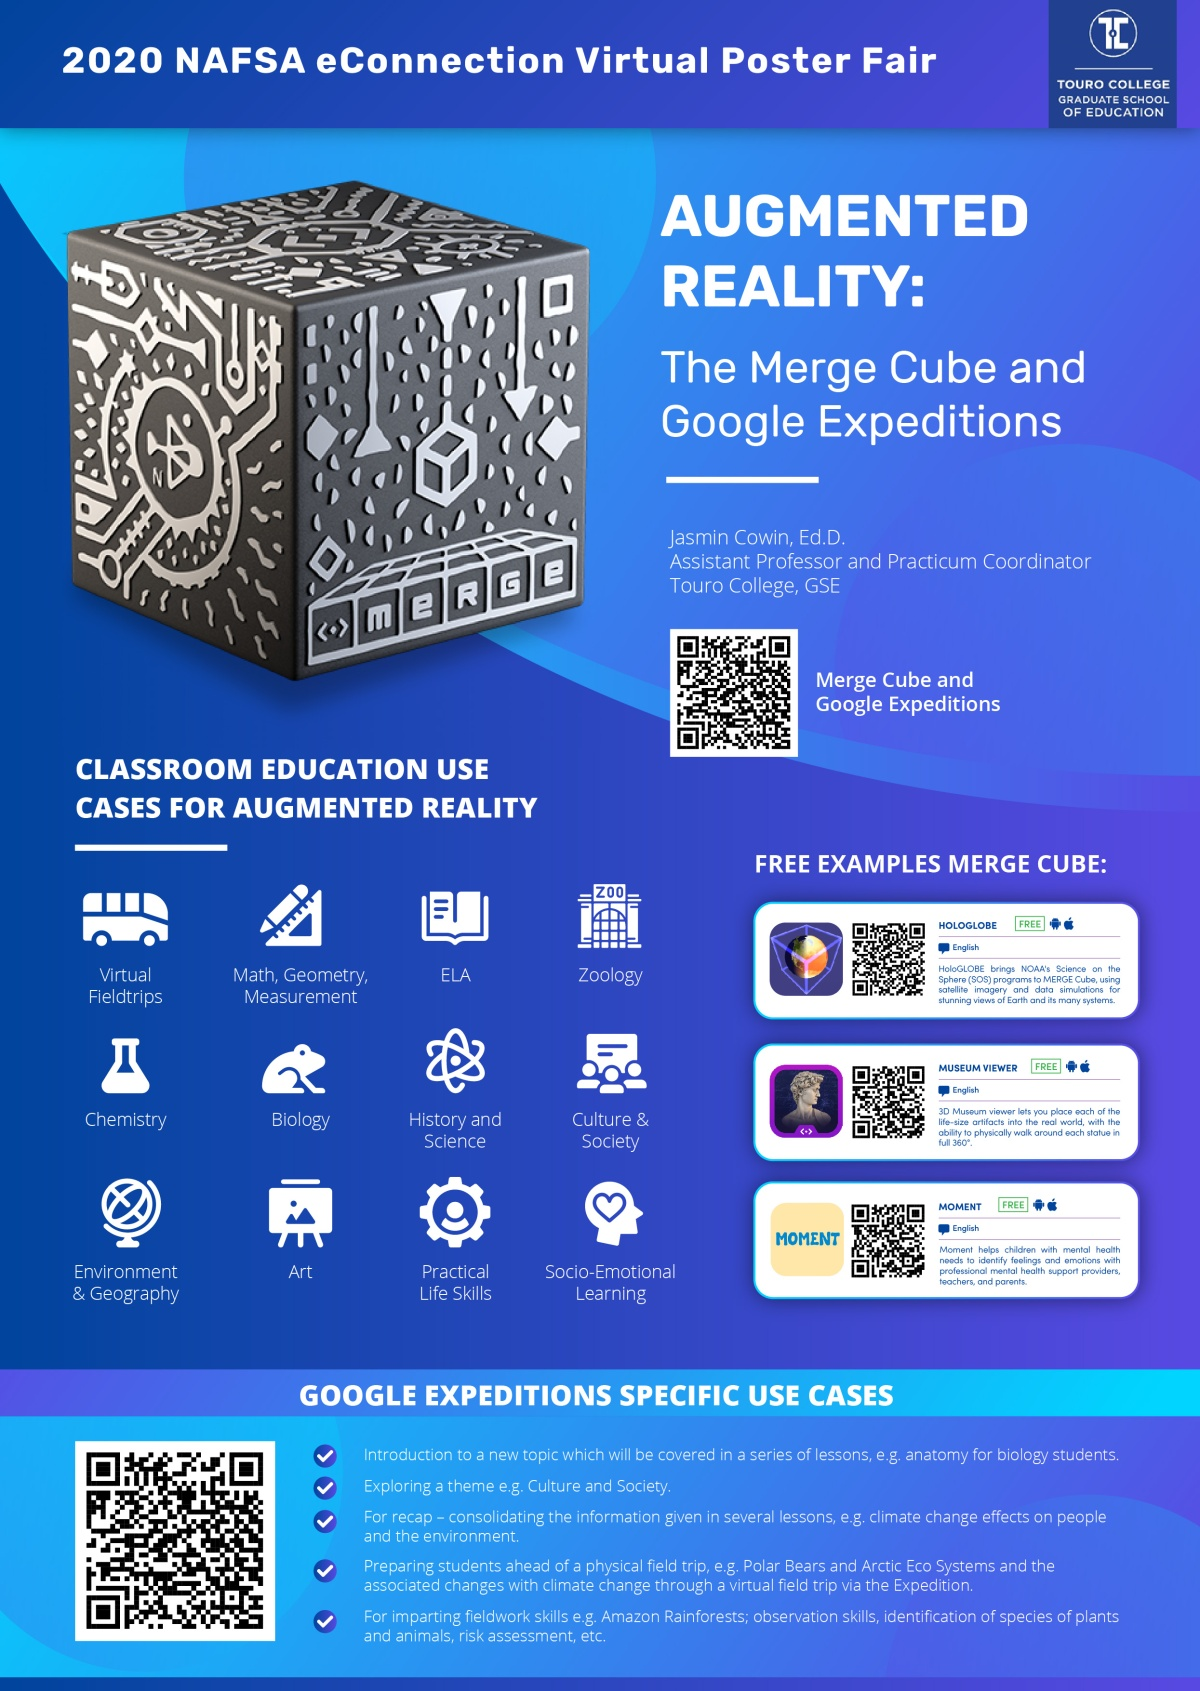 Dr. Cowin's Merge Cube and Google Expedition Poster for the Virtual Poster Fair at the 2020 NAFSA Conference